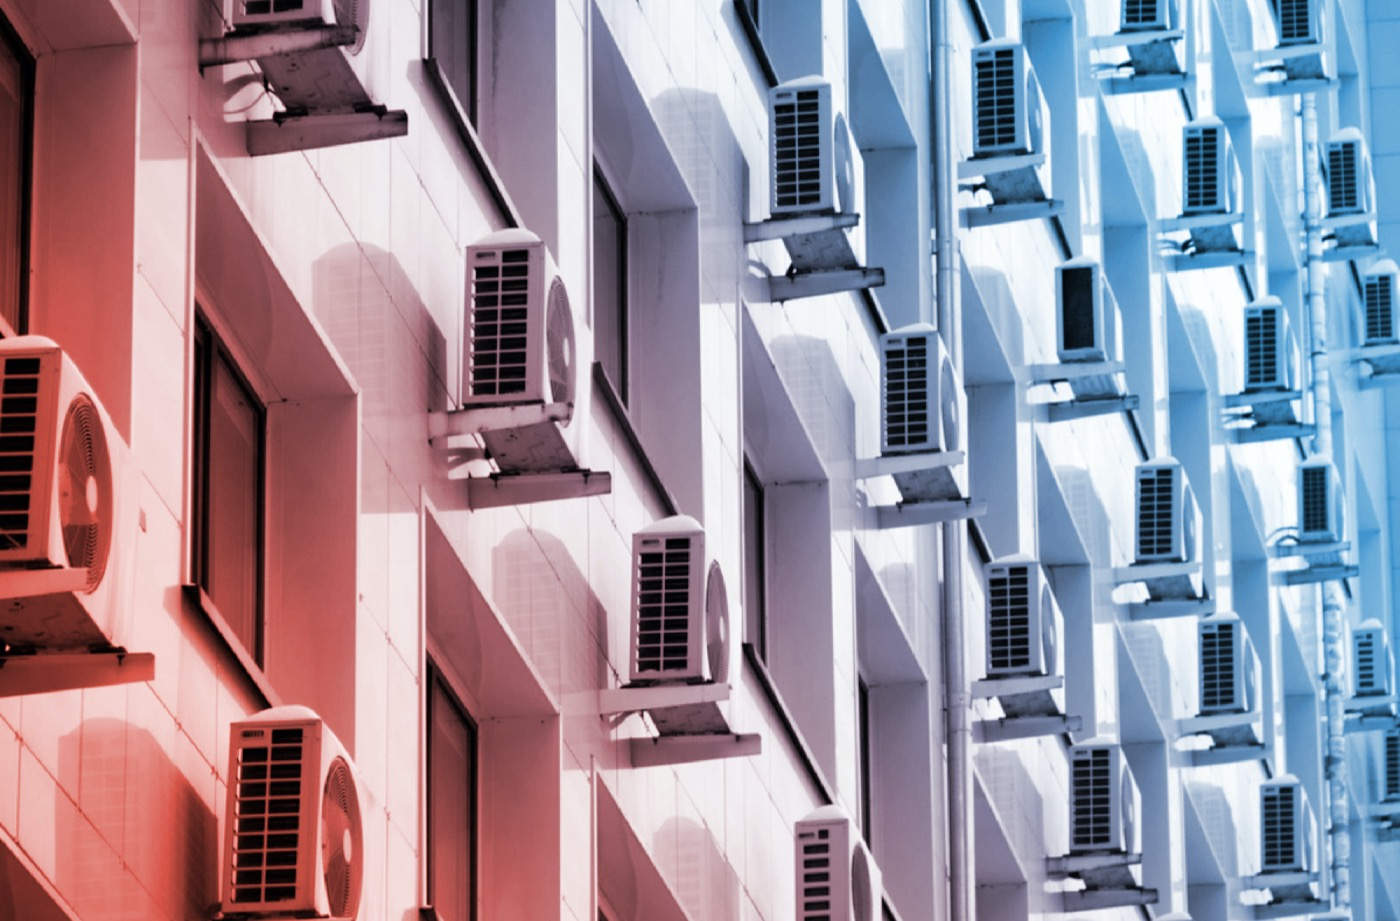 On the facade of the office building there are white air conditioners at the Windows. Concept of indoor climate and air circulation